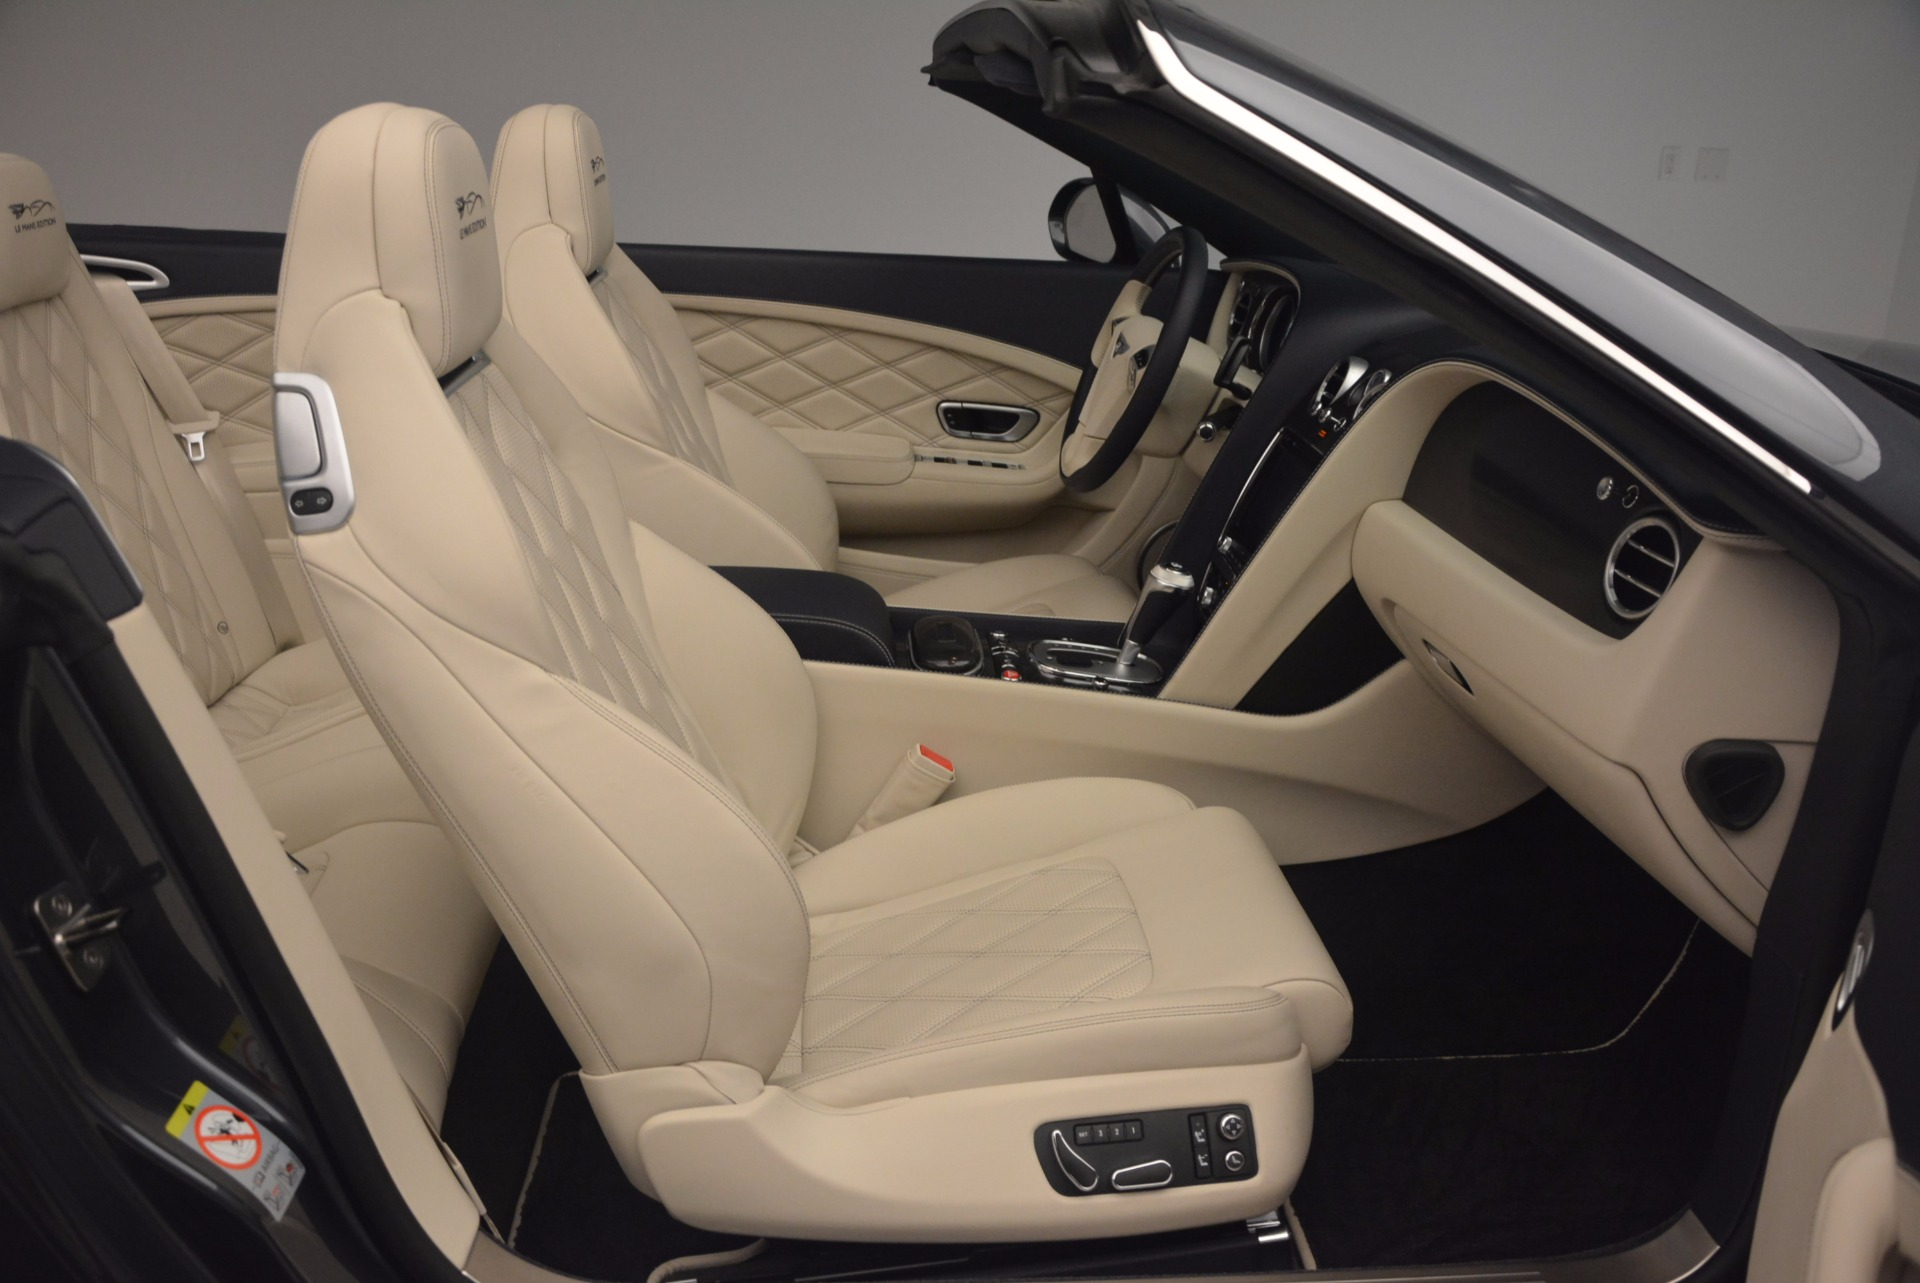 Used 2013 Bentley Continental GT V8 Le Mans Edition, 1 of 48 For Sale In Greenwich, CT. Alfa Romeo of Greenwich, 7226 1288_p49